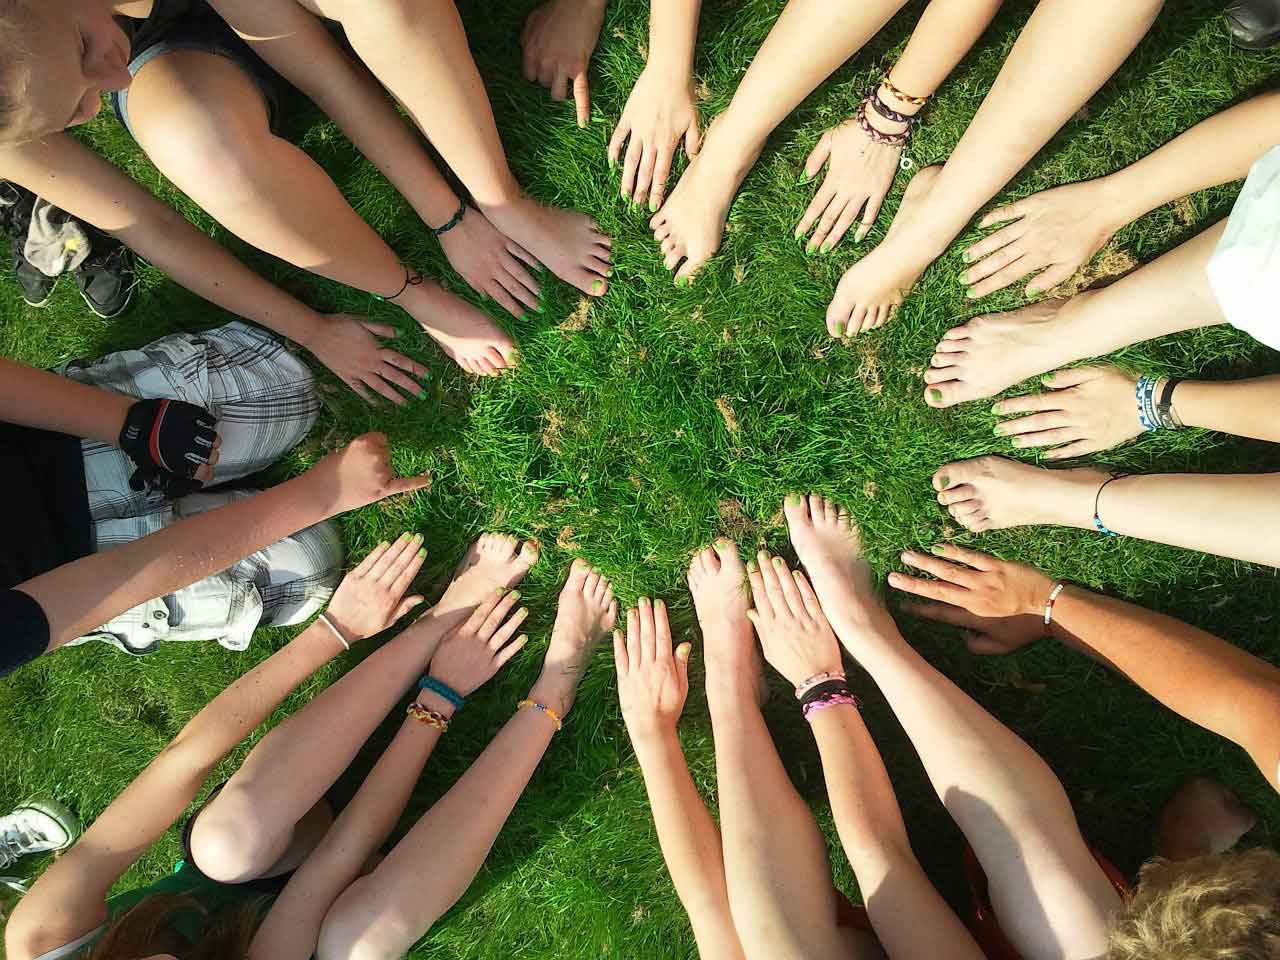 A birds-eye view of a circle of people placing their hand & feet into the middle to demonstrate togetherness. One of the key factors in small businesses helping local communities.